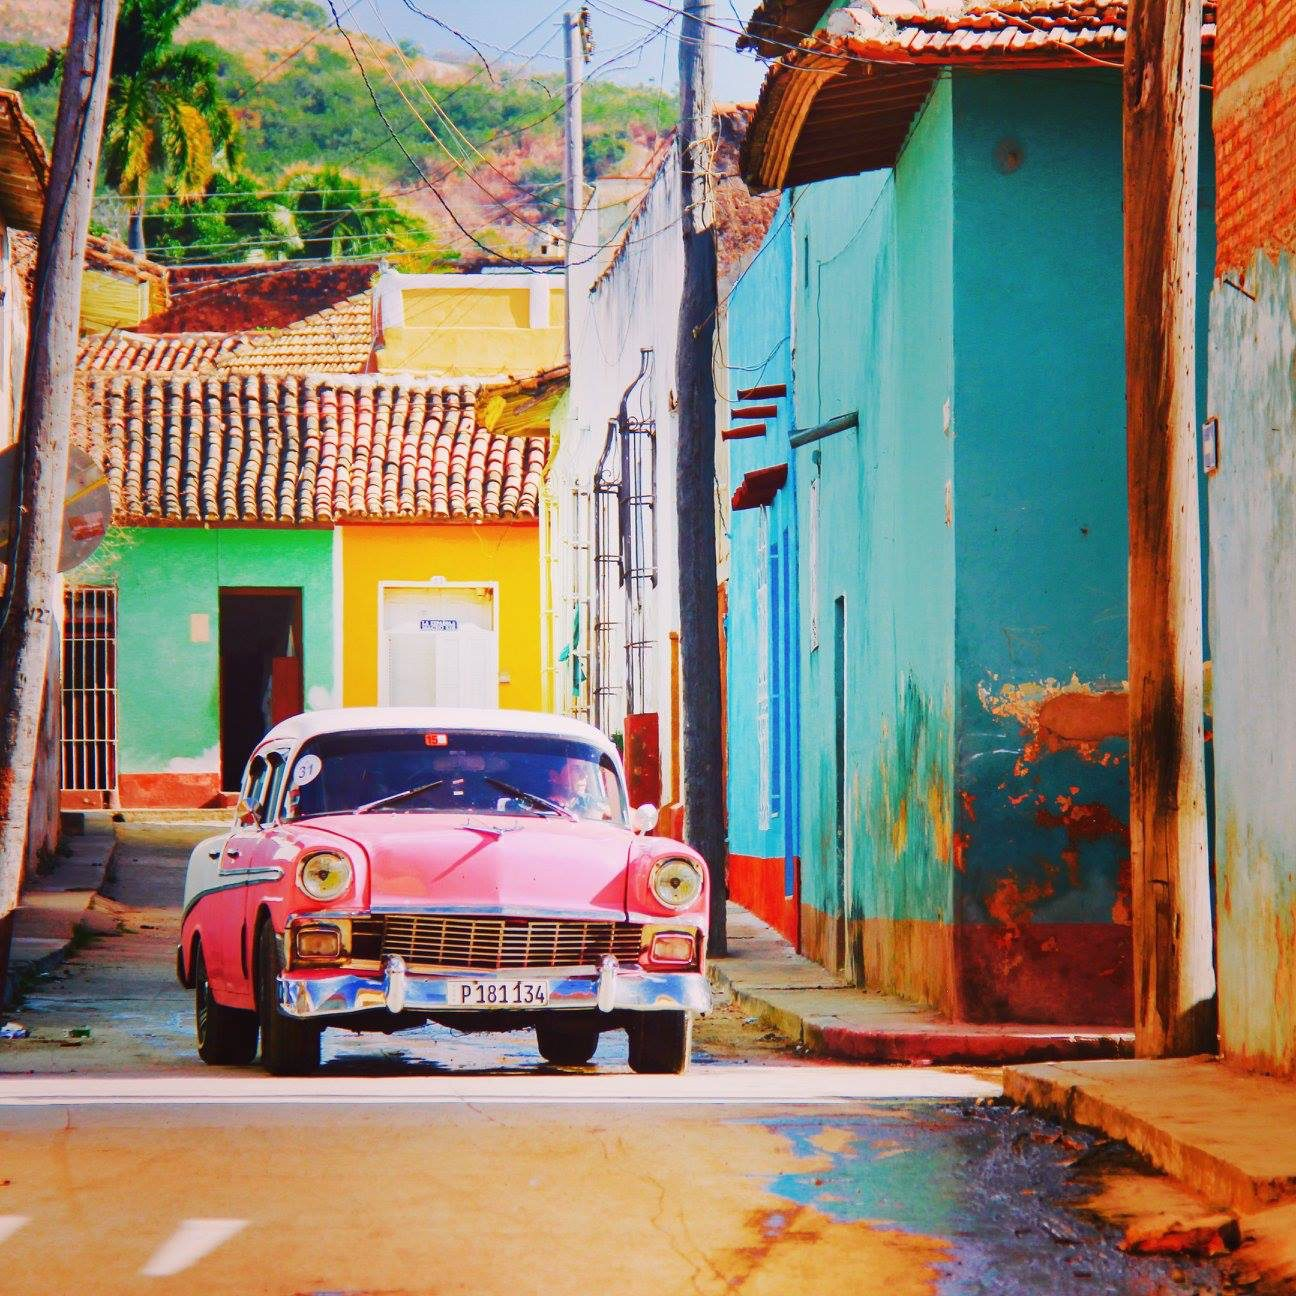 pink car driving through colorful street on a safari in the Americas